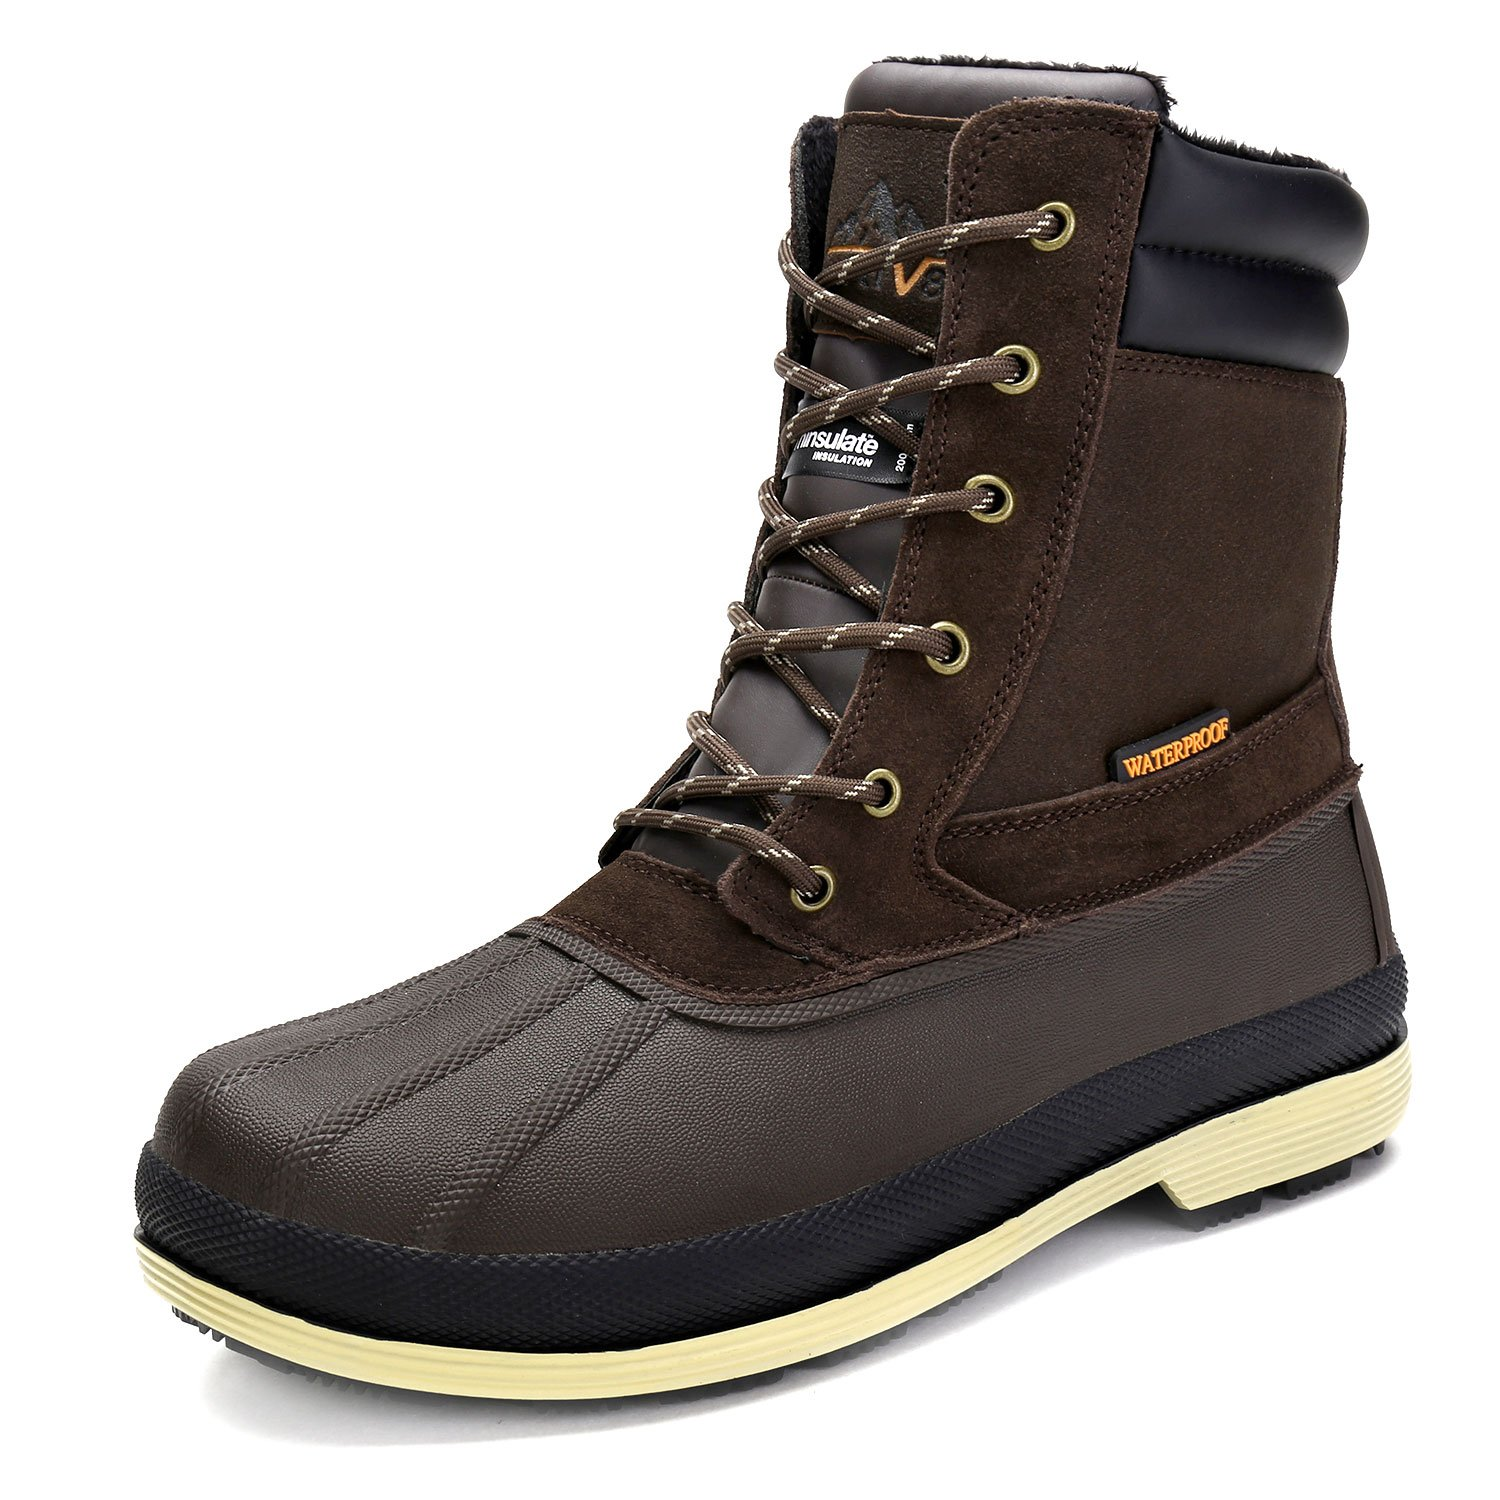 arctiv8 Men's nortiv8 170391-M Dk.Brown Black Insulated Waterproof Work Snow Boots Size 10 M US by arctiv8